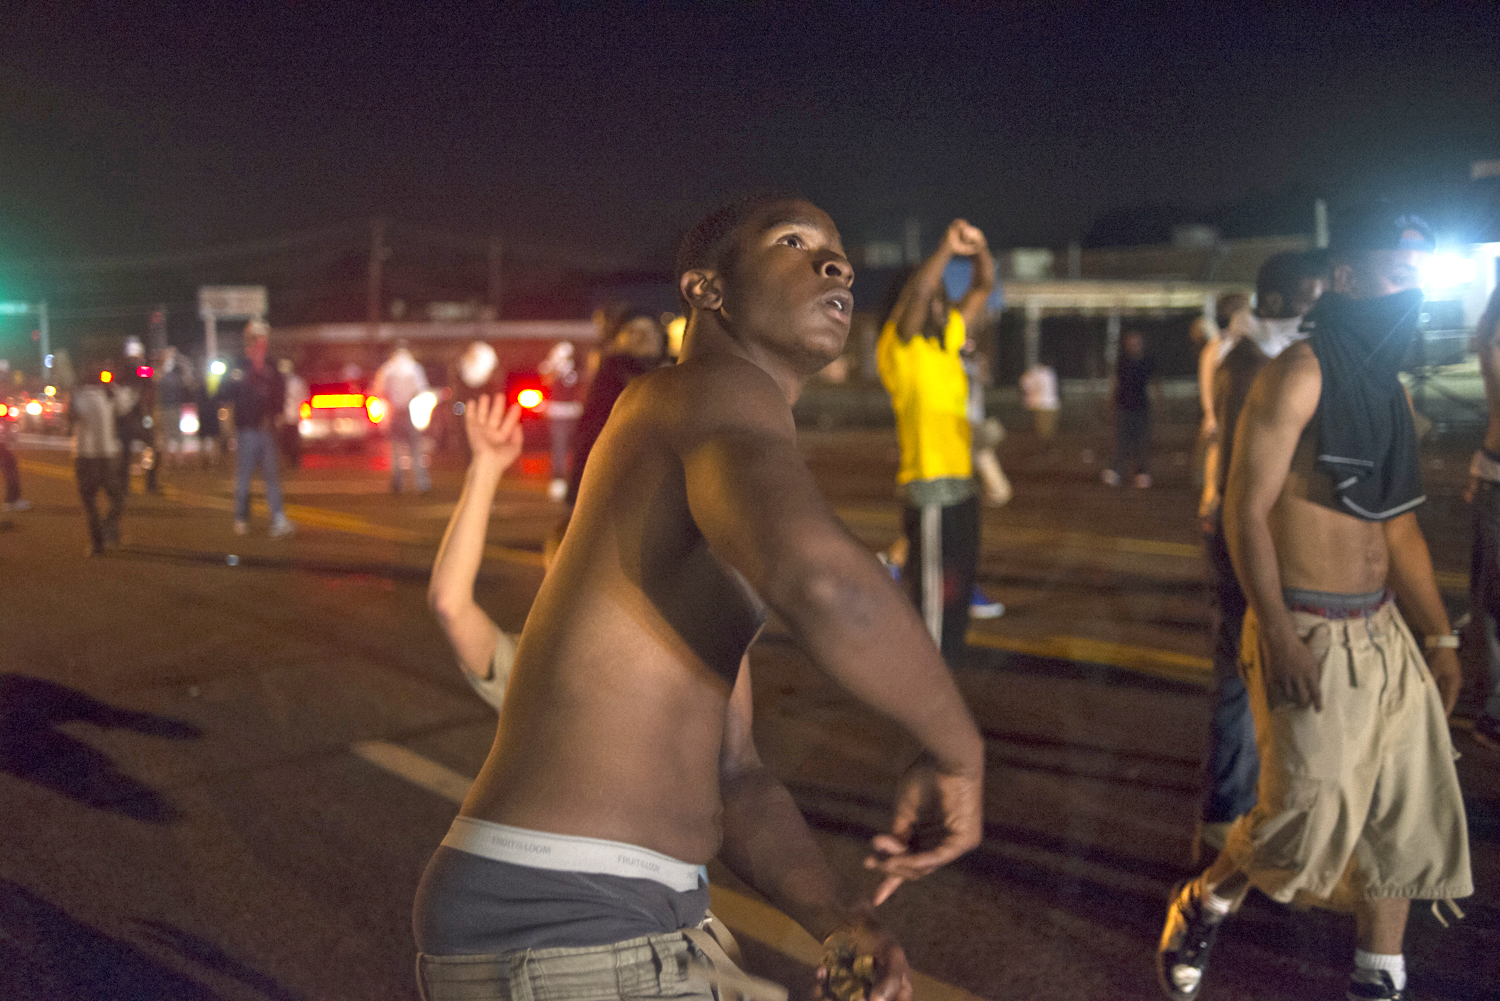 A protestor retaliates against police during violent clashes in Ferguson, Mo. on Aug. 17, 2014.